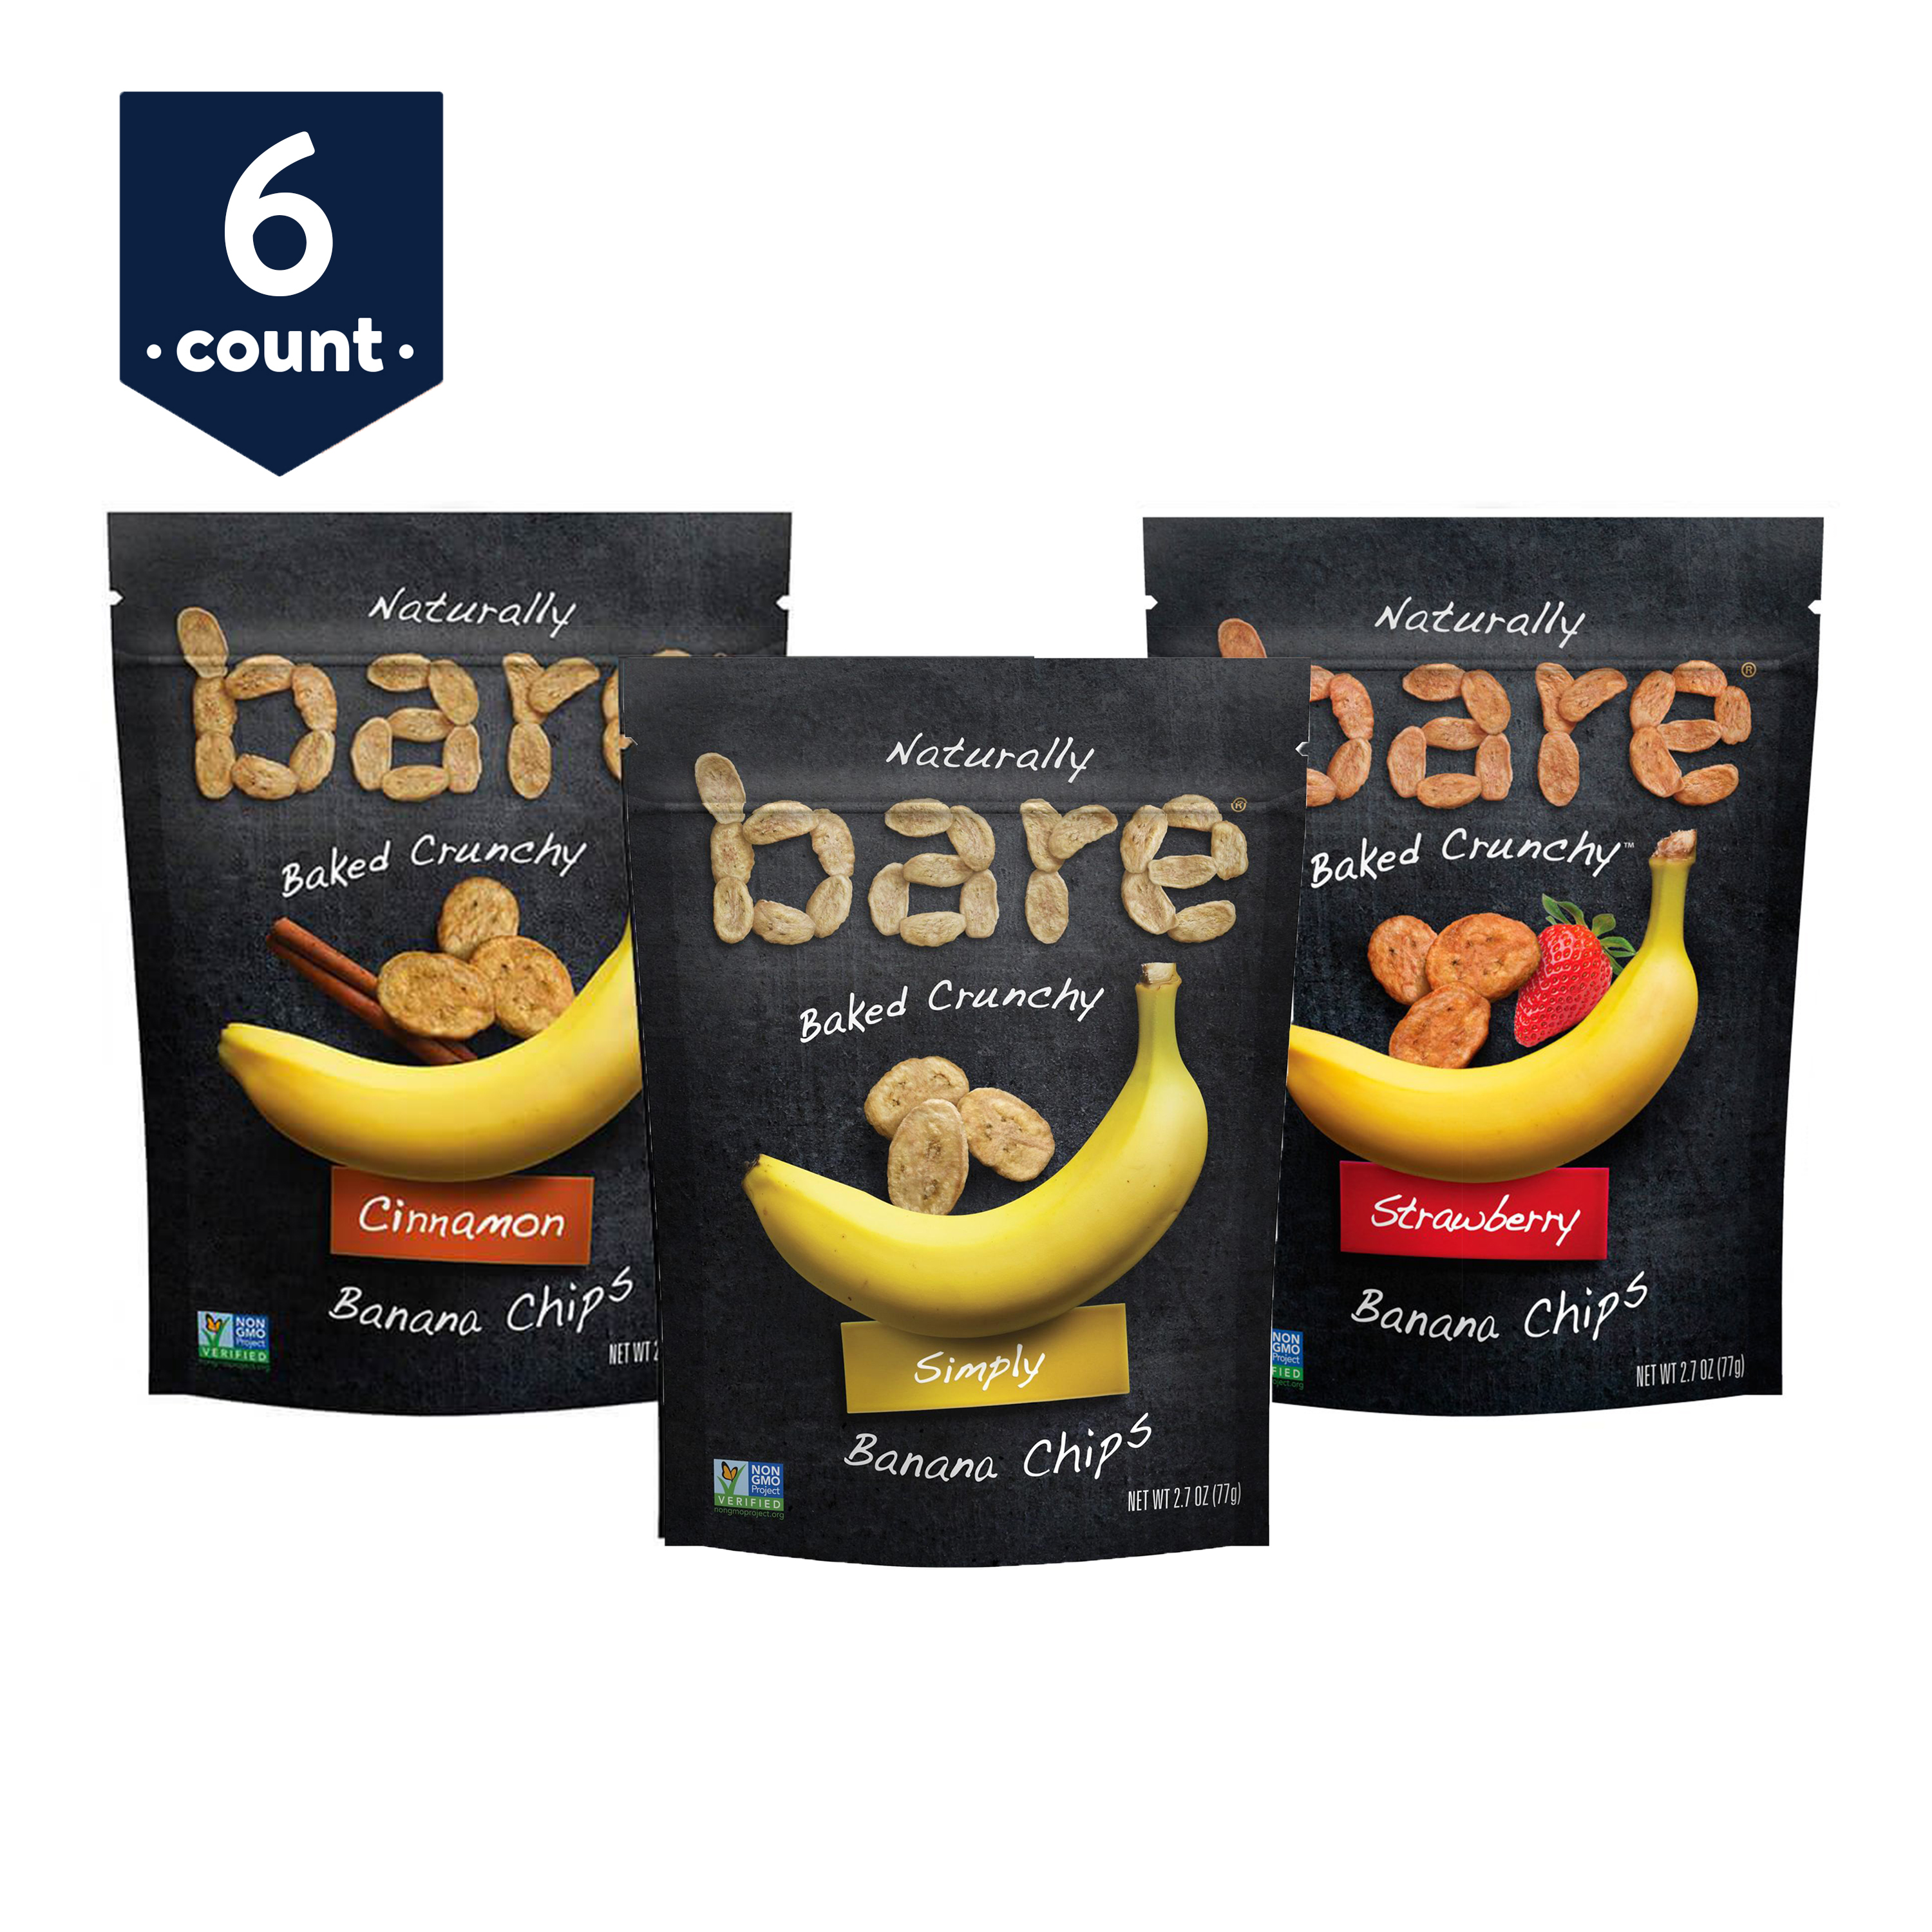 bare Baked Crunchy Banana Chips Variety Snack Pack, Simply, Cinnamon, and Strawberry, 2.7 oz Bags, 6 Count